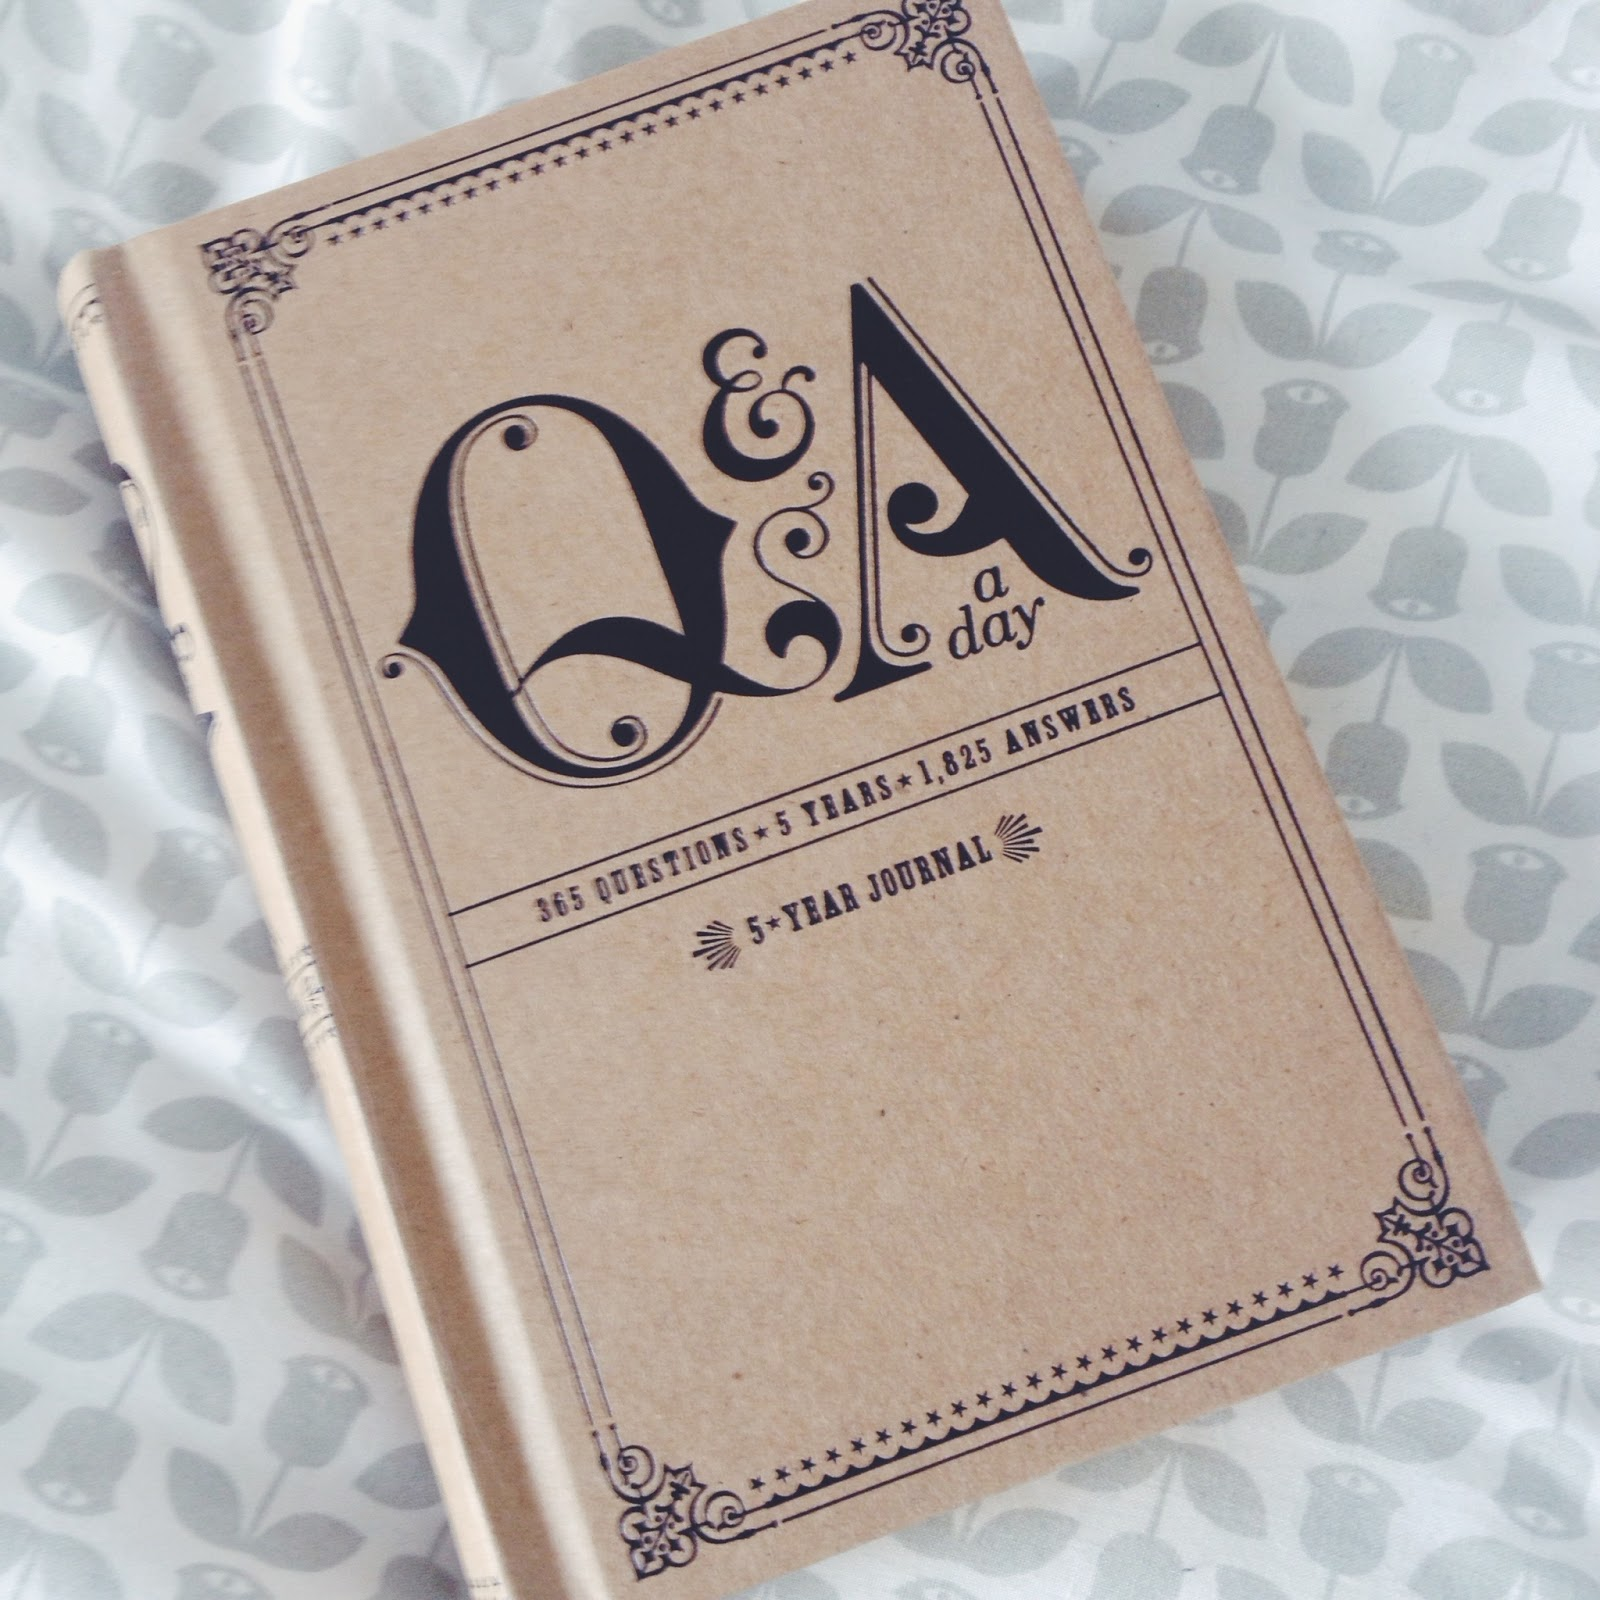 q & a a day journal